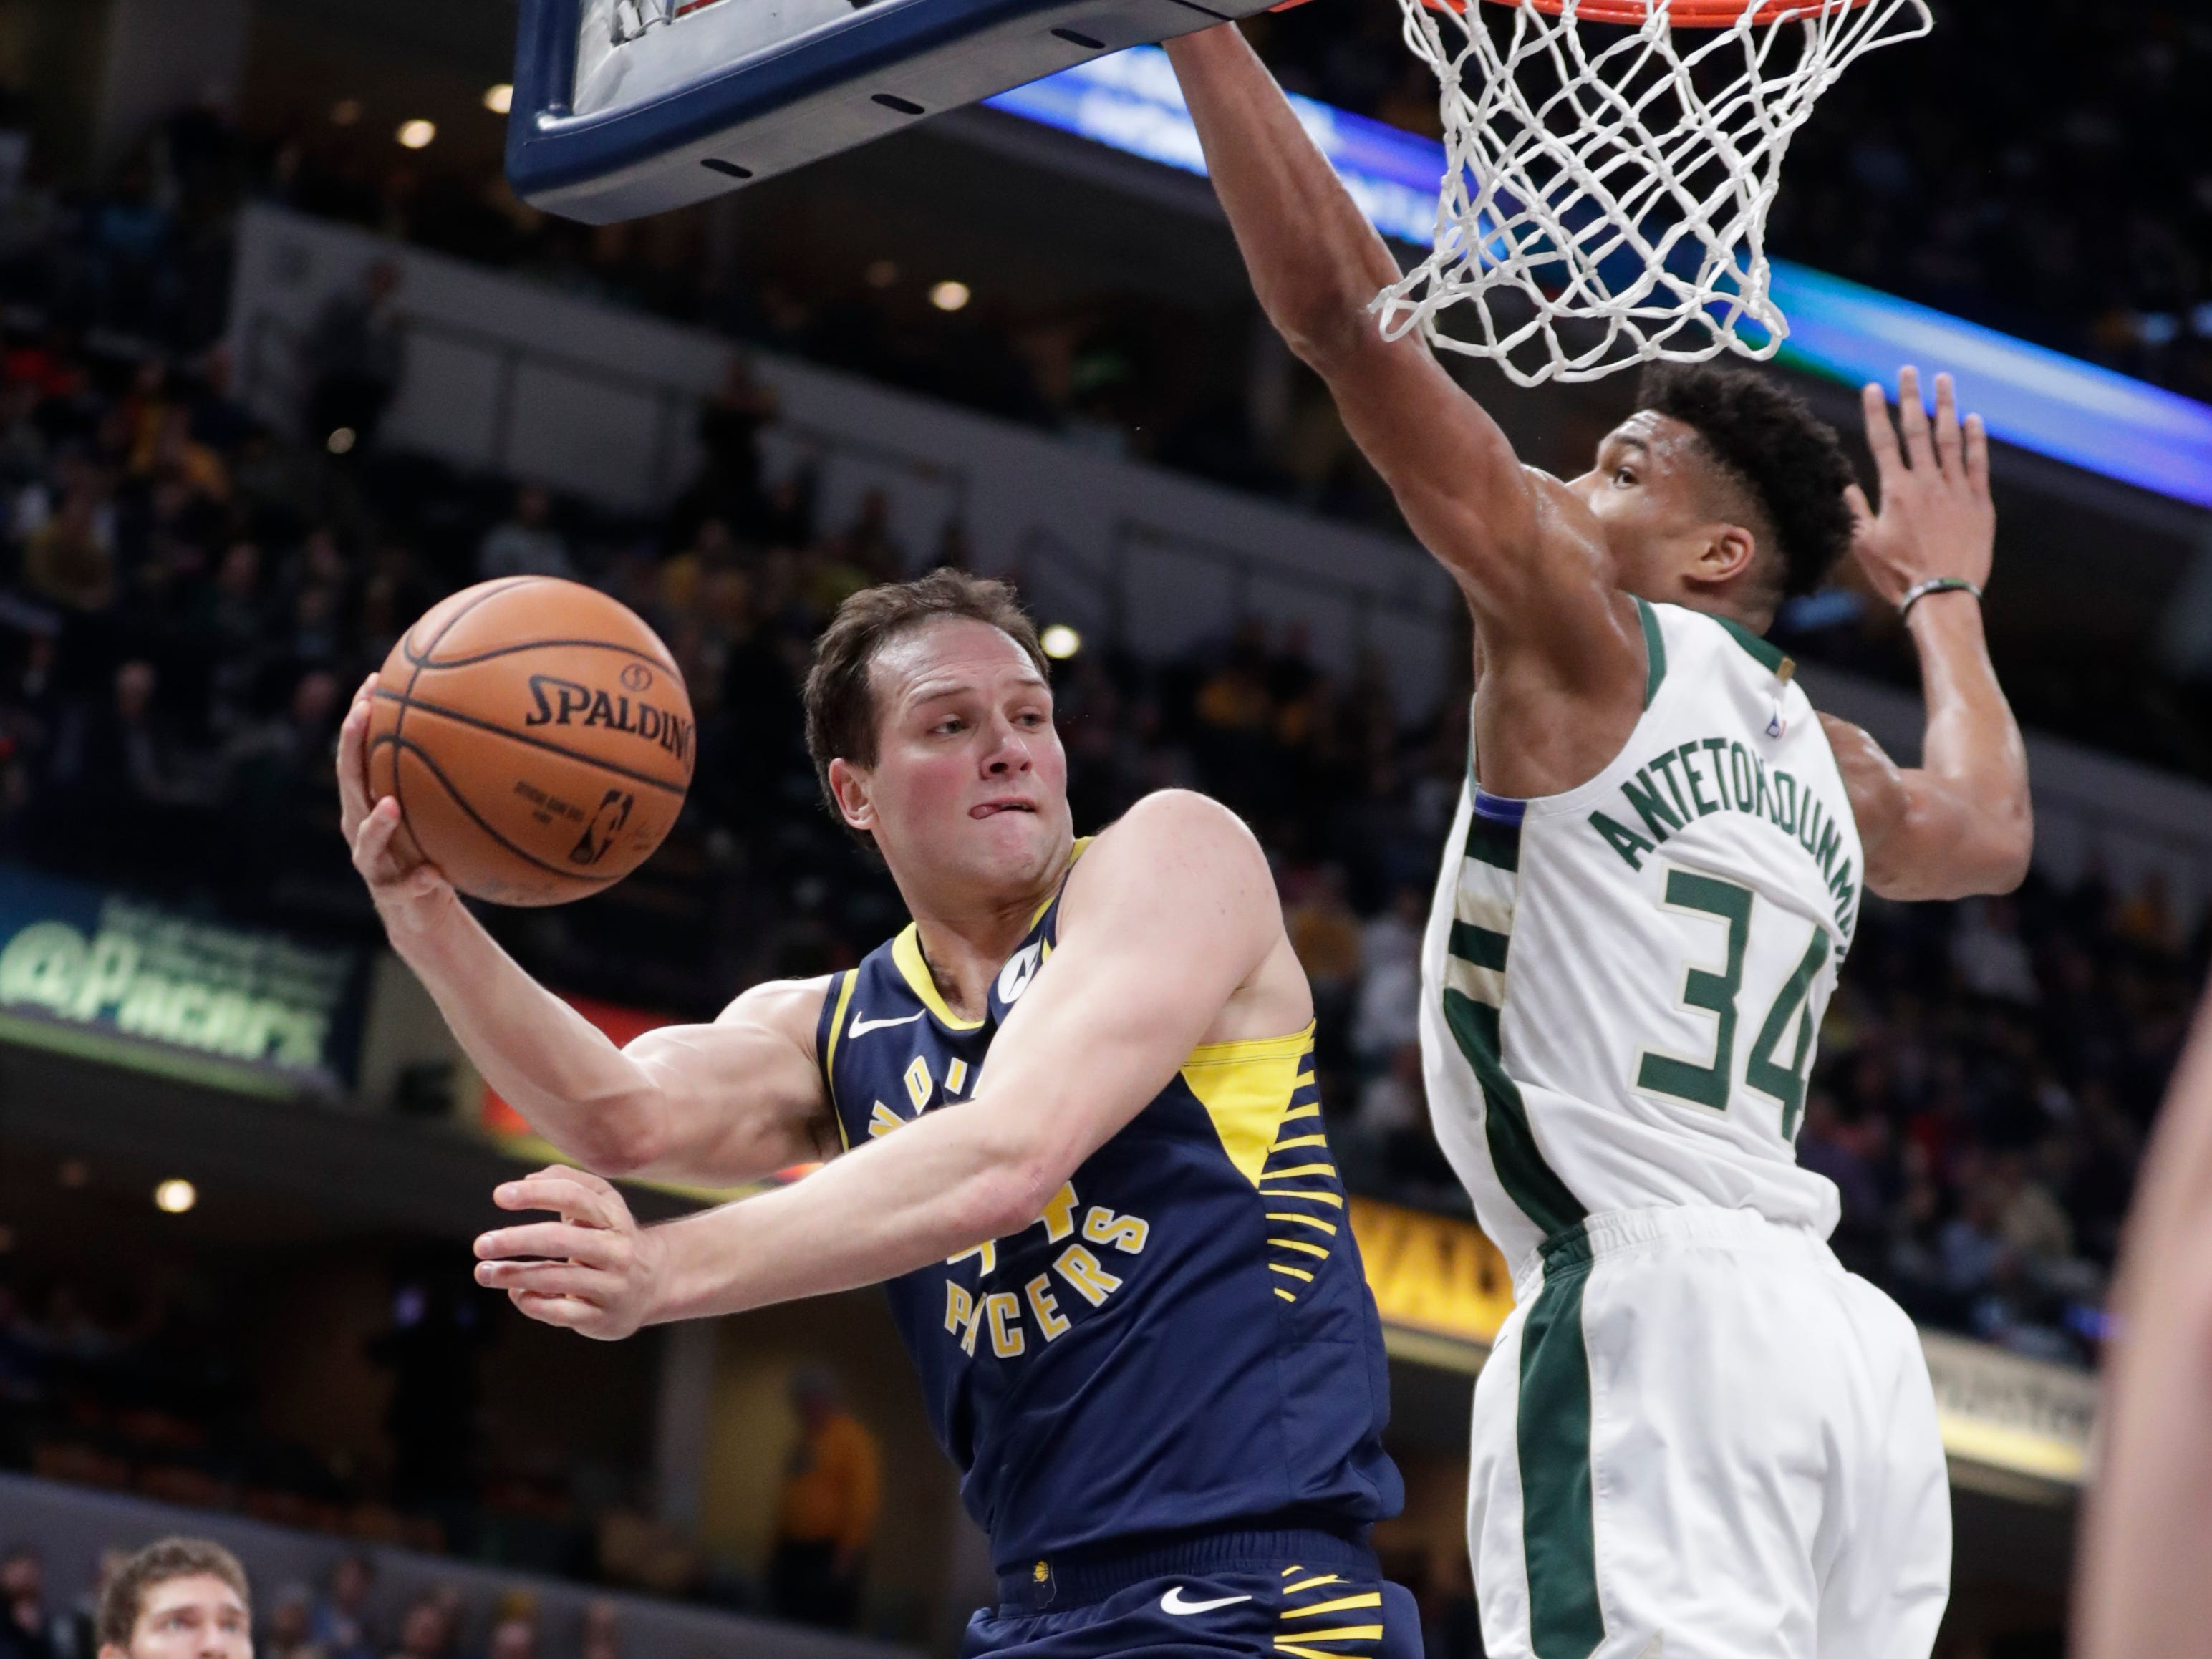 Pacers forward Bojan Bogdanovic is forced to kick a pass out to a teammate after Bucks forward Giannis Antetokounmpo made sure he couldn't get a shot off during the first half Wednesday.